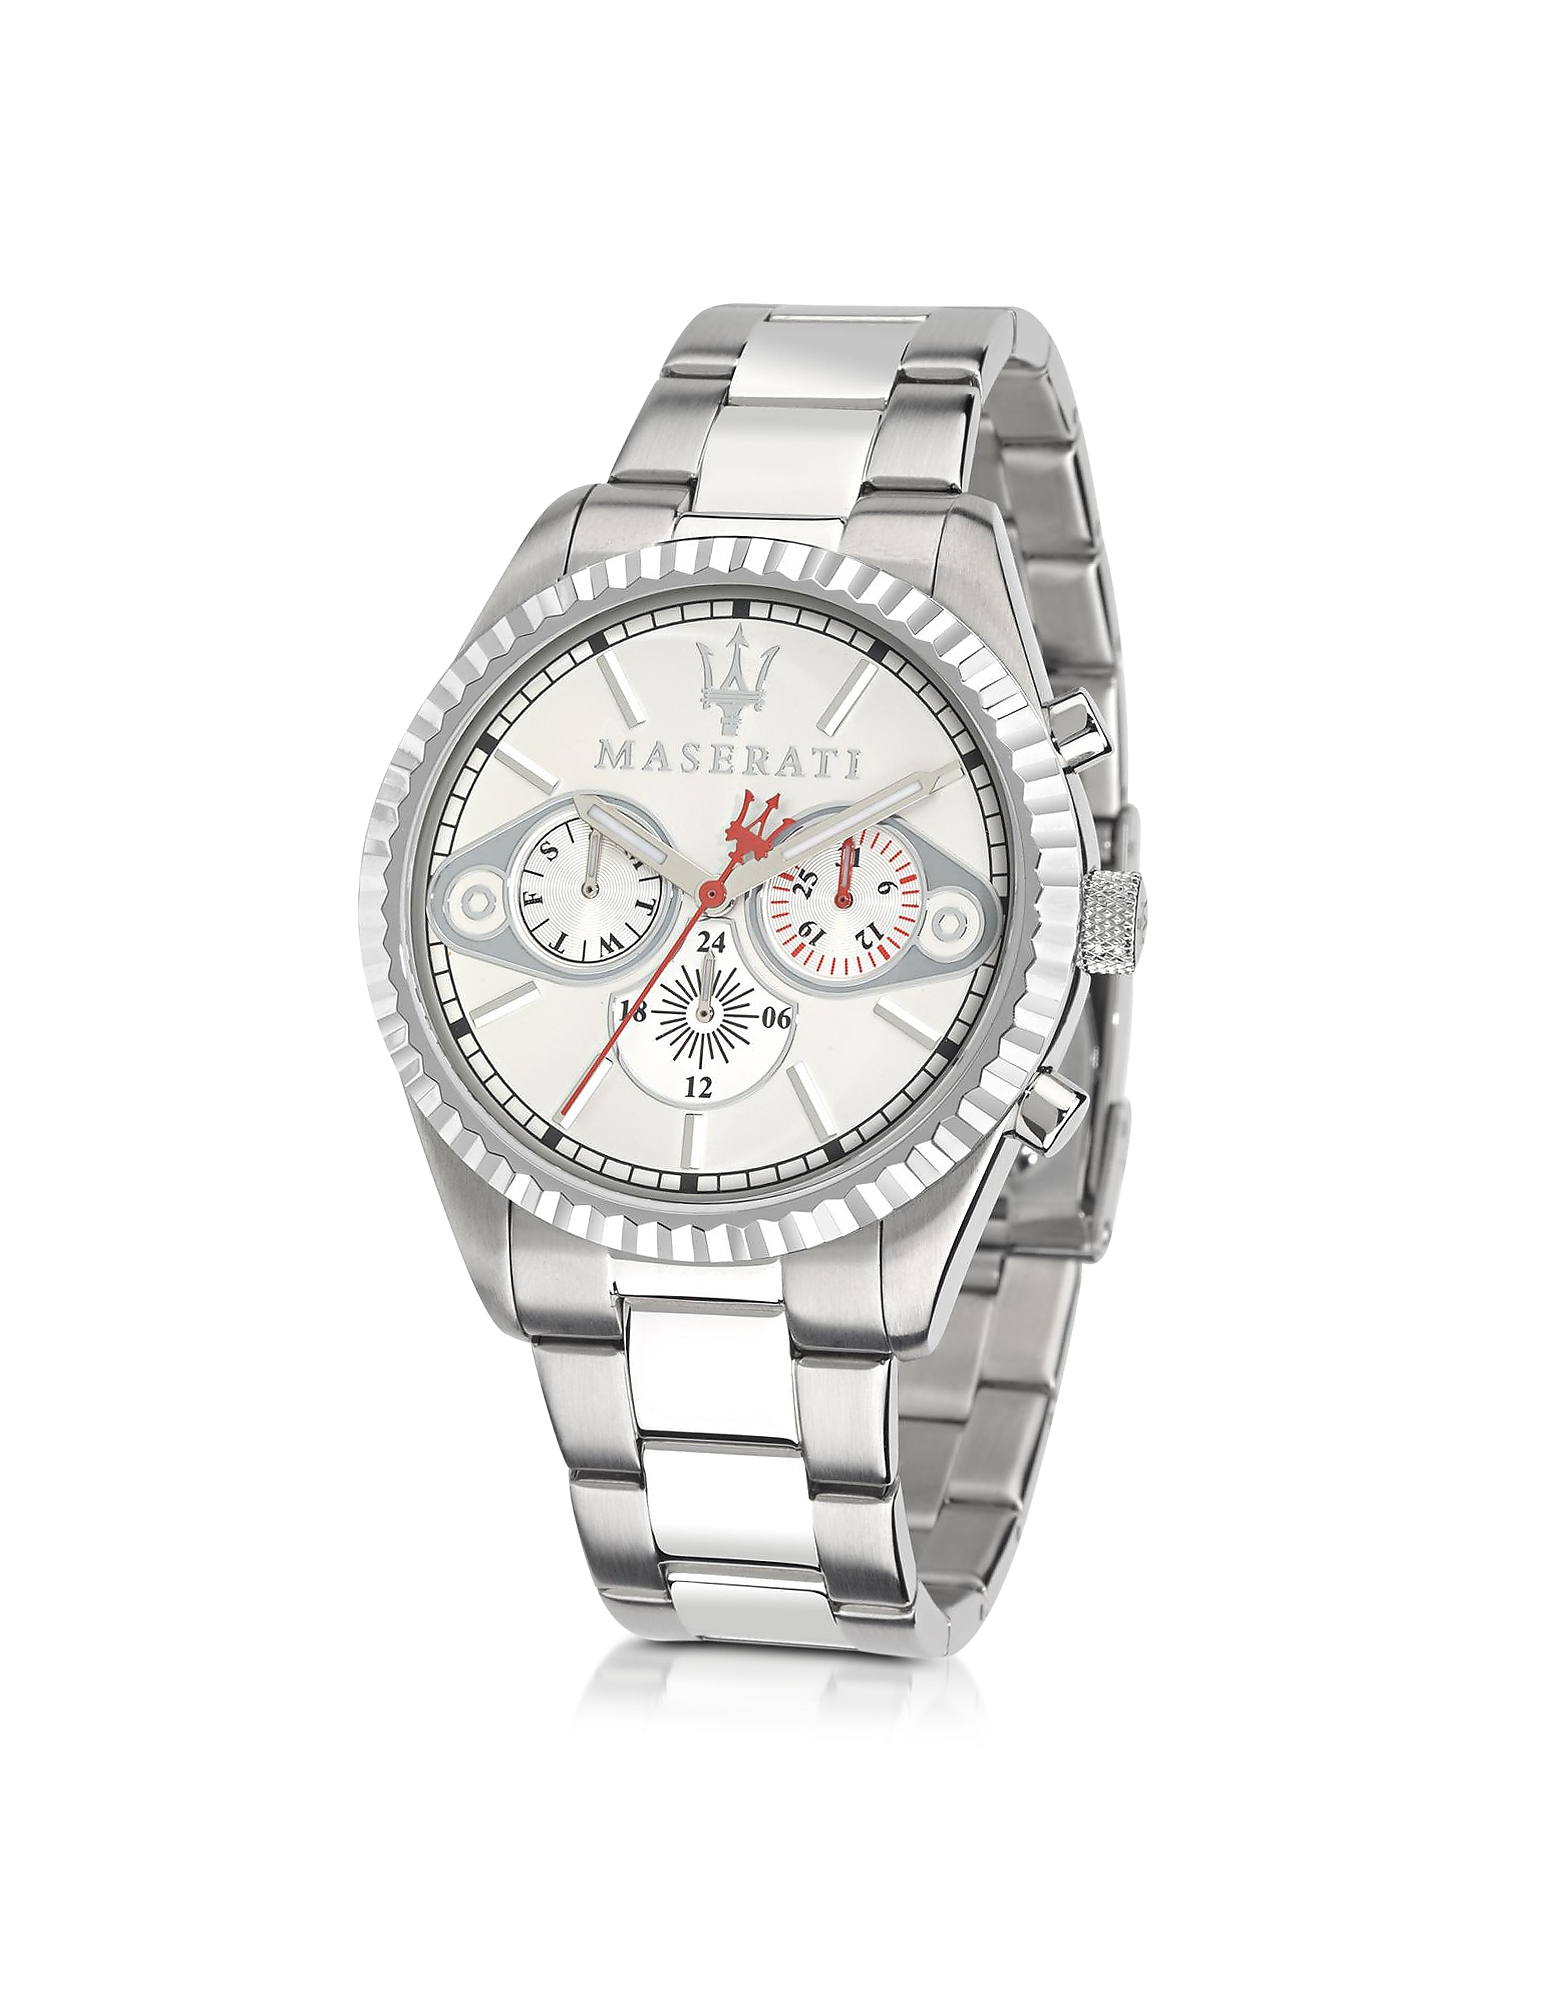 Maserati Men's Watches, Competizione Chronograph Multi Silver Dial Stainless Steel Men's Watch